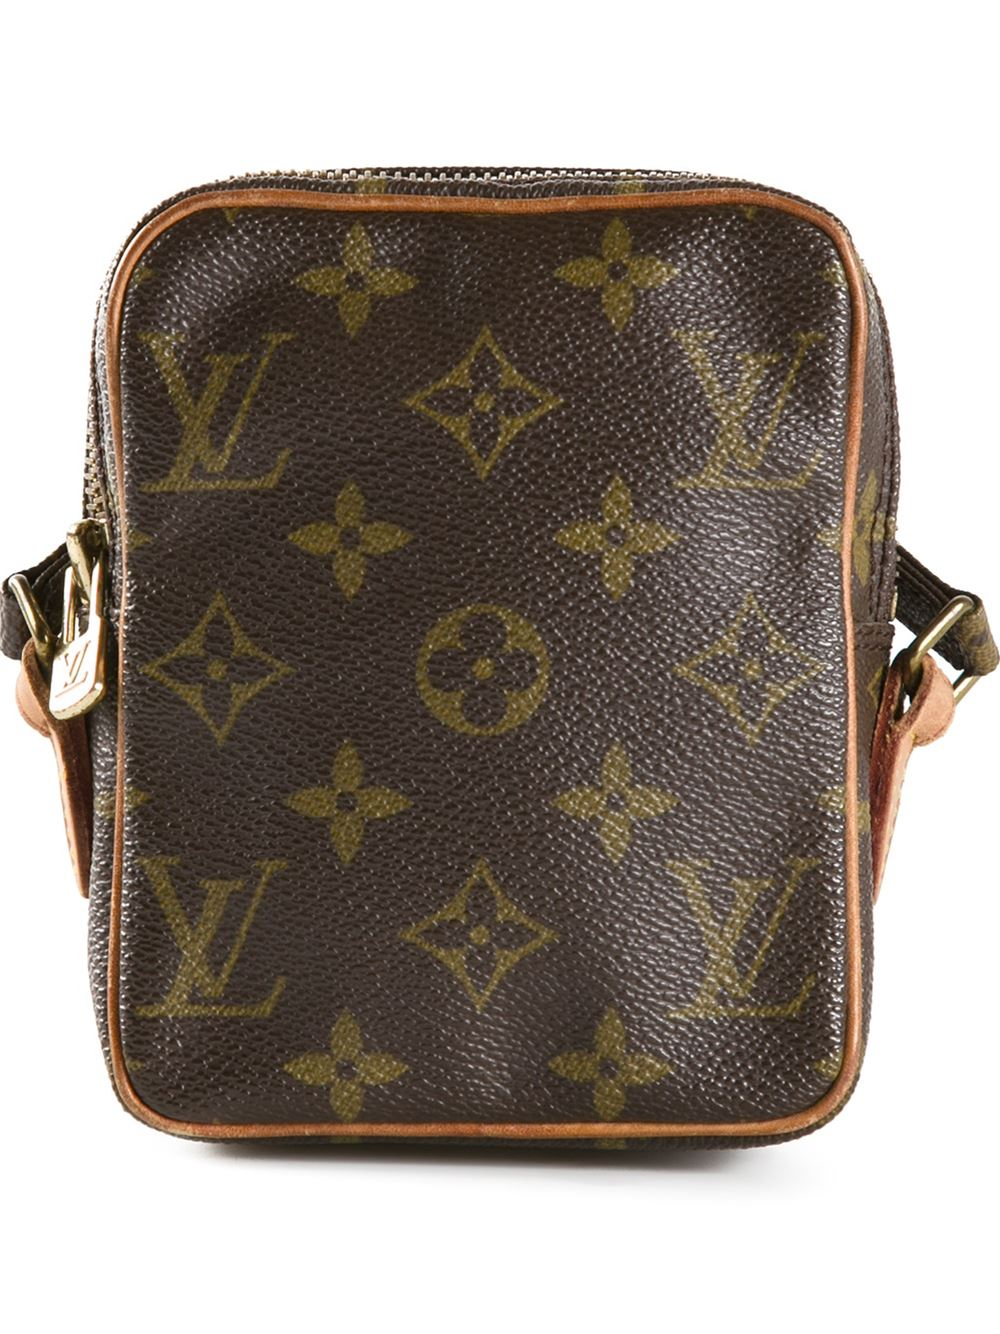 8cf79633befd Louis Vuitton Small Over The Shoulder Purse - Best Purse Image Ccdbb.Org